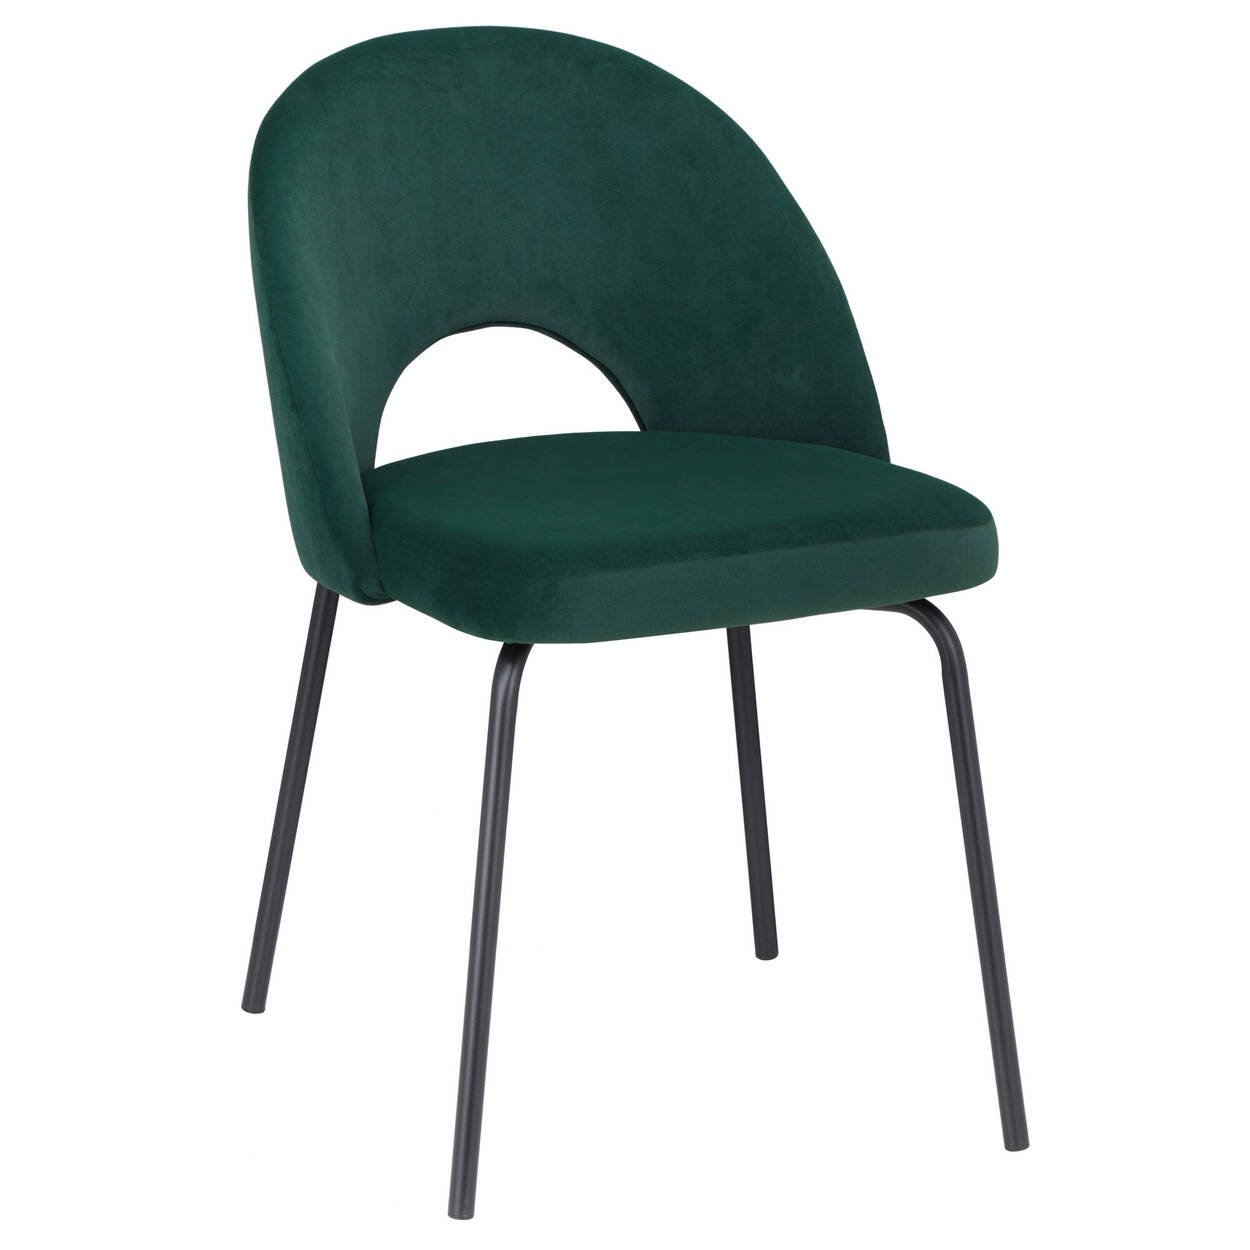 Velvet and Metal Dining Chair